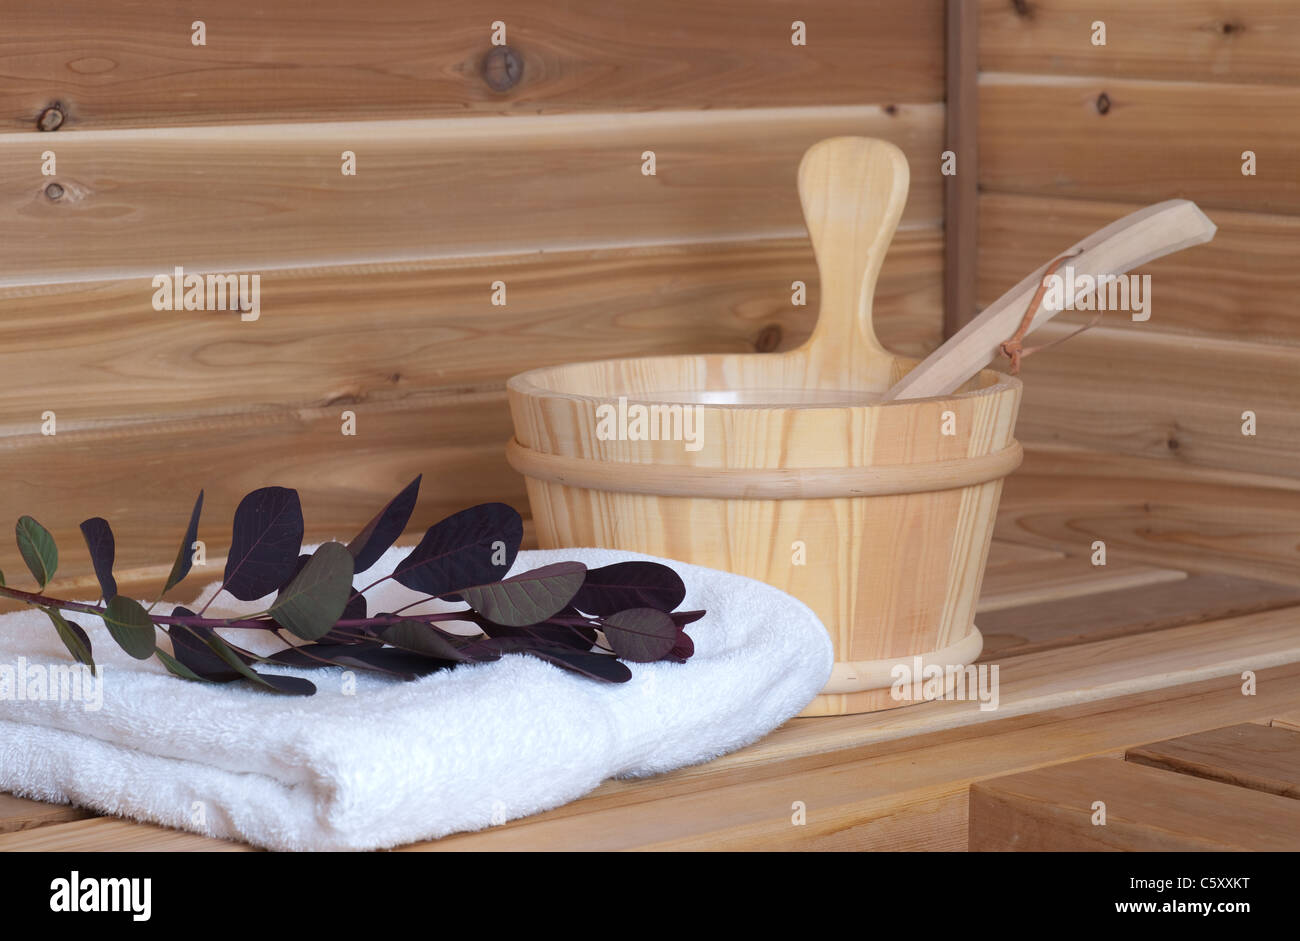 wooden sauna with bucket and ladle beside towel and flower - Stock Image